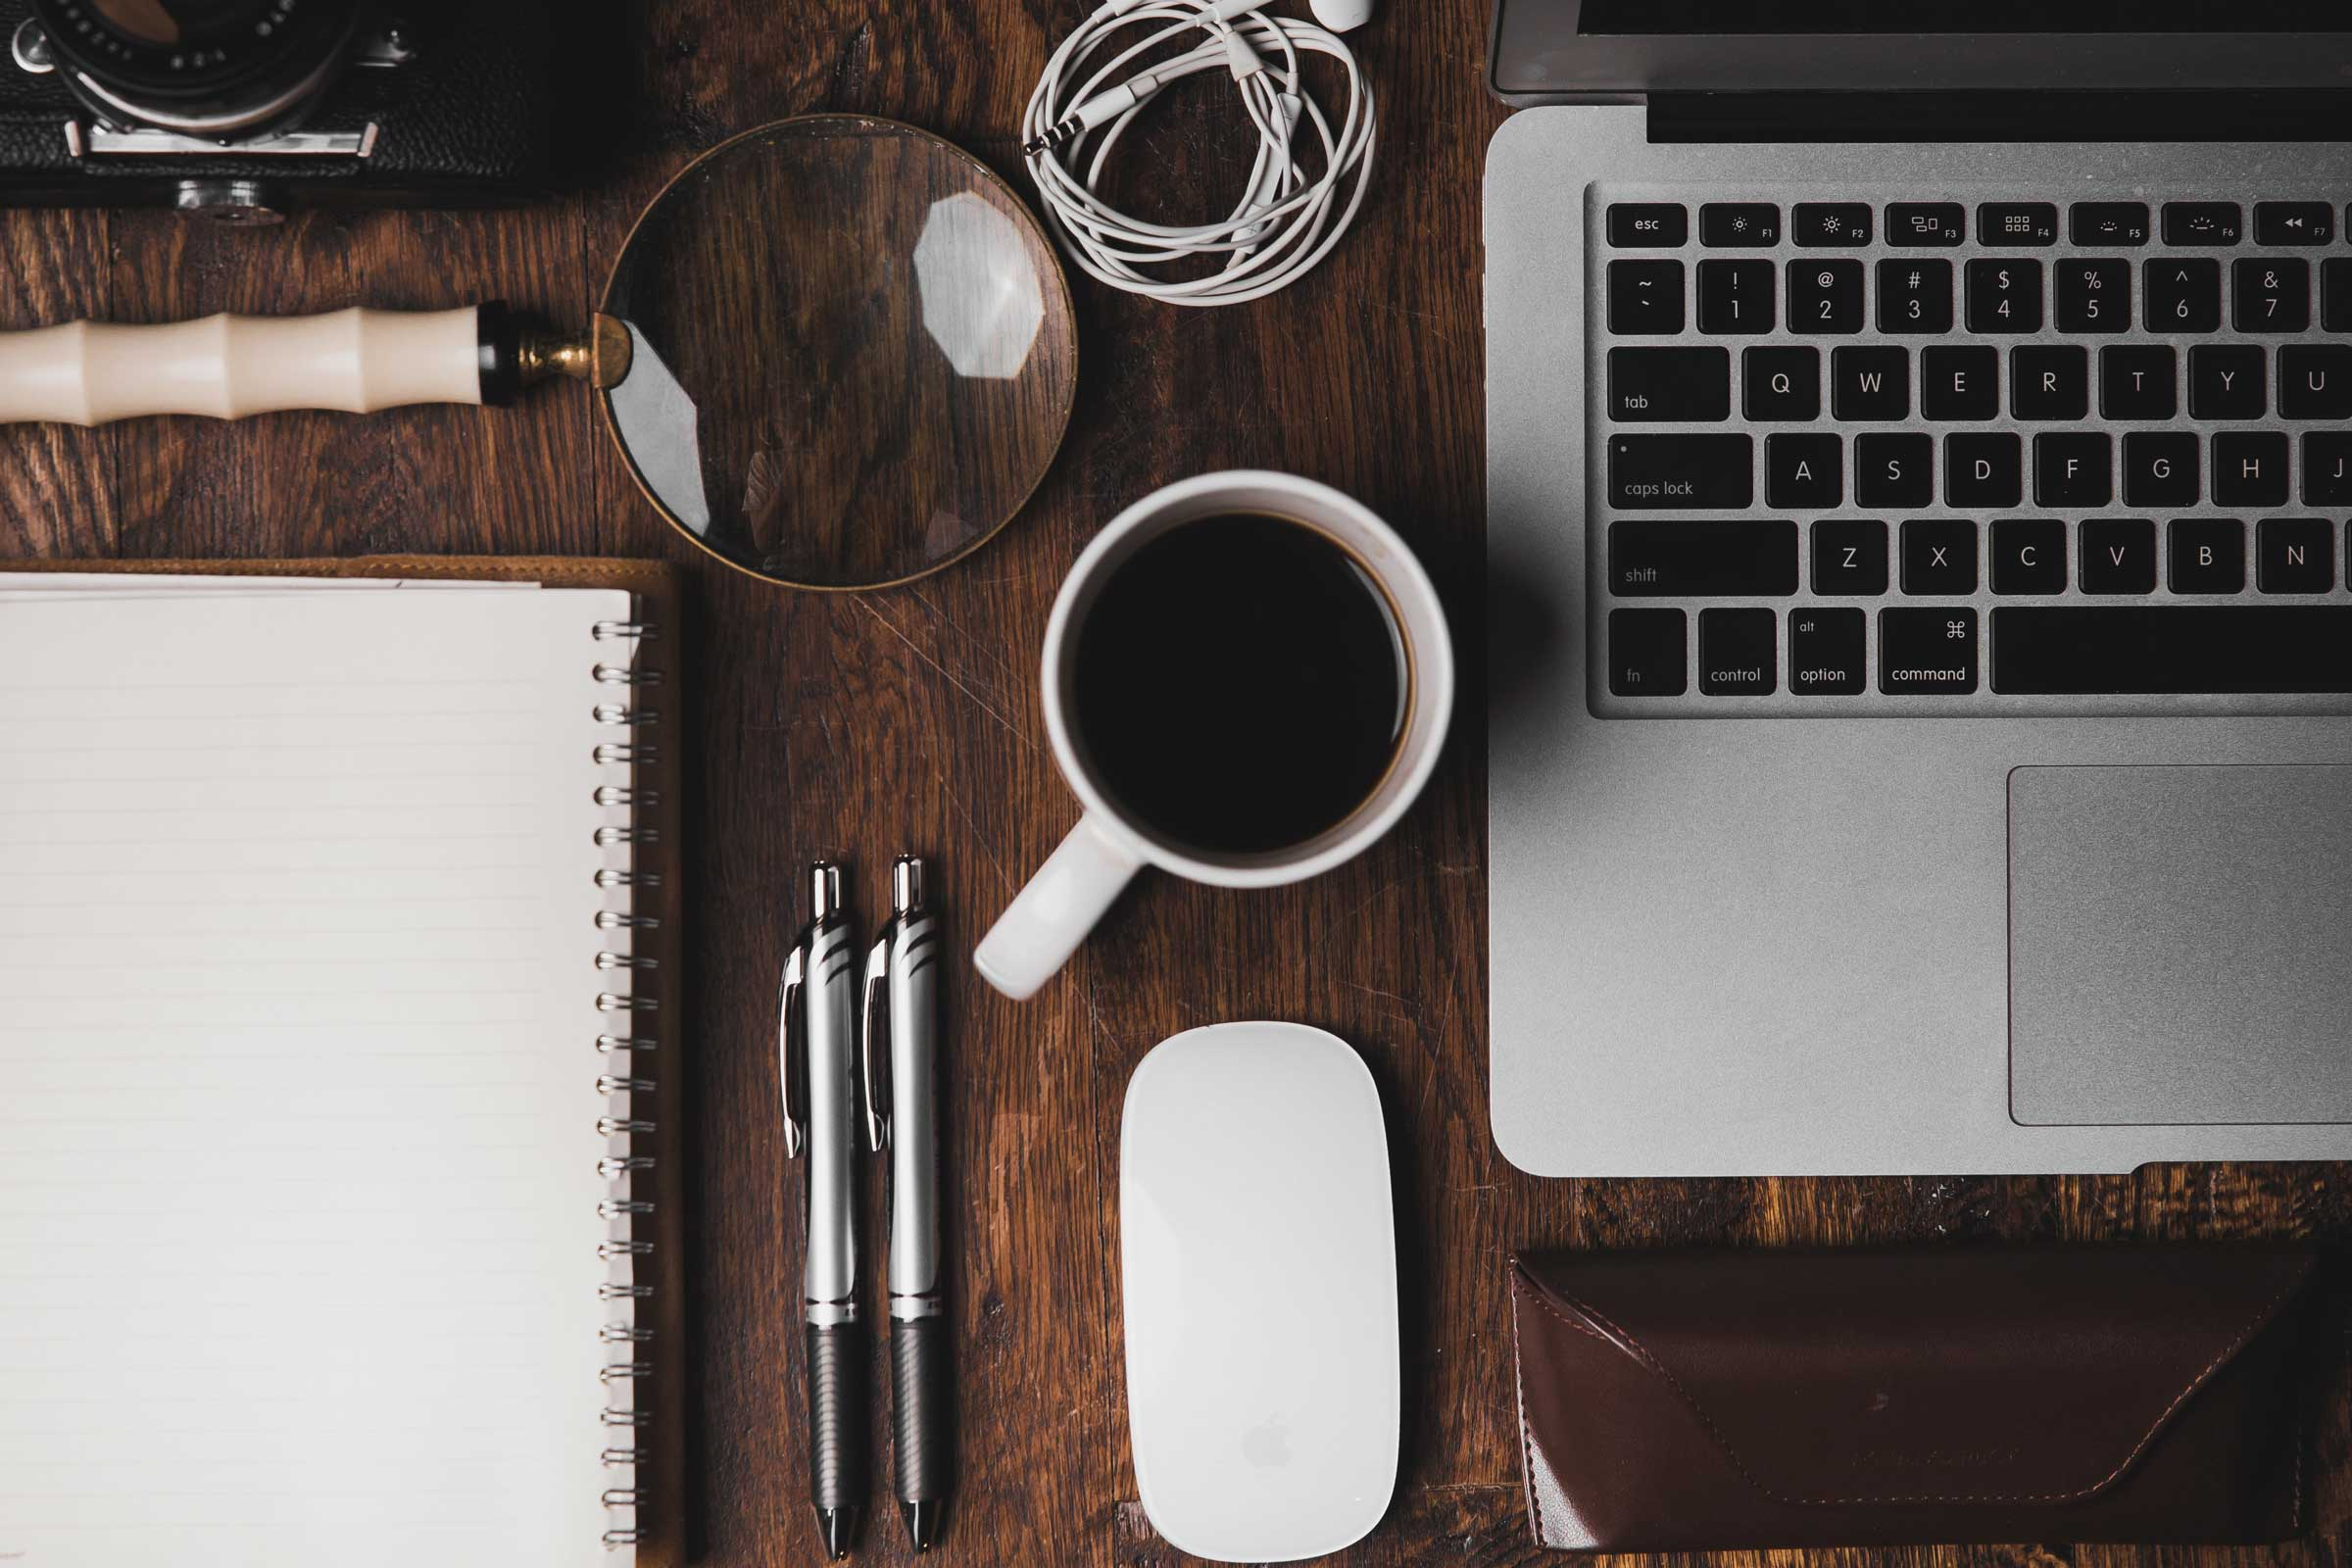 How to Remove Distractions and Stay Focused on Work